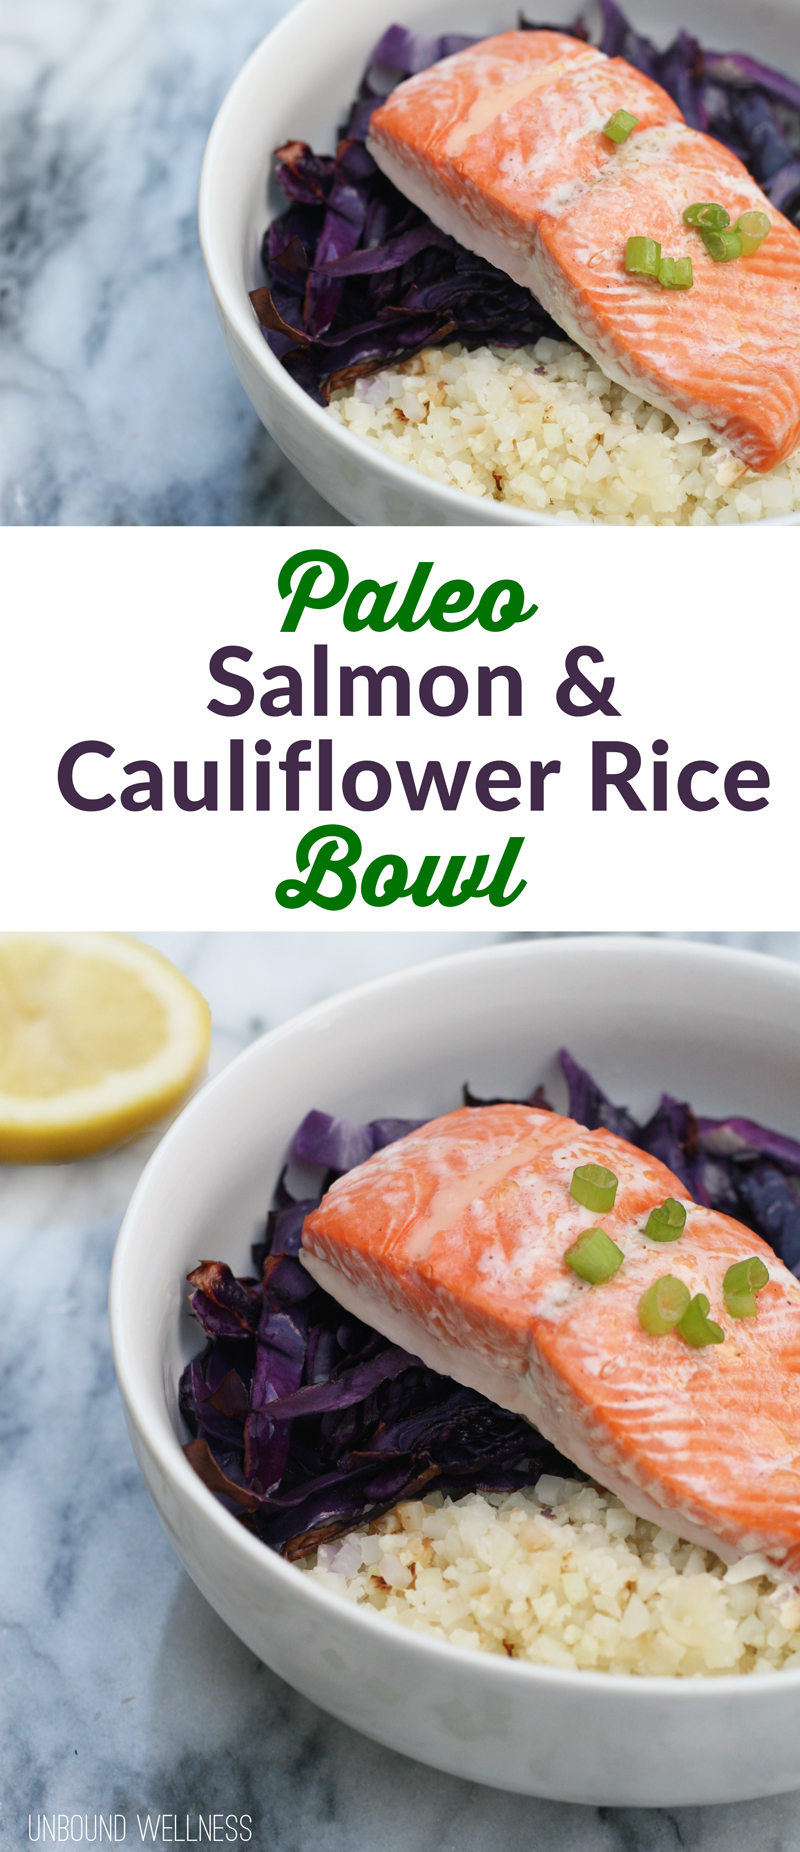 Paleo Salmon & Cauliflower rice bowl